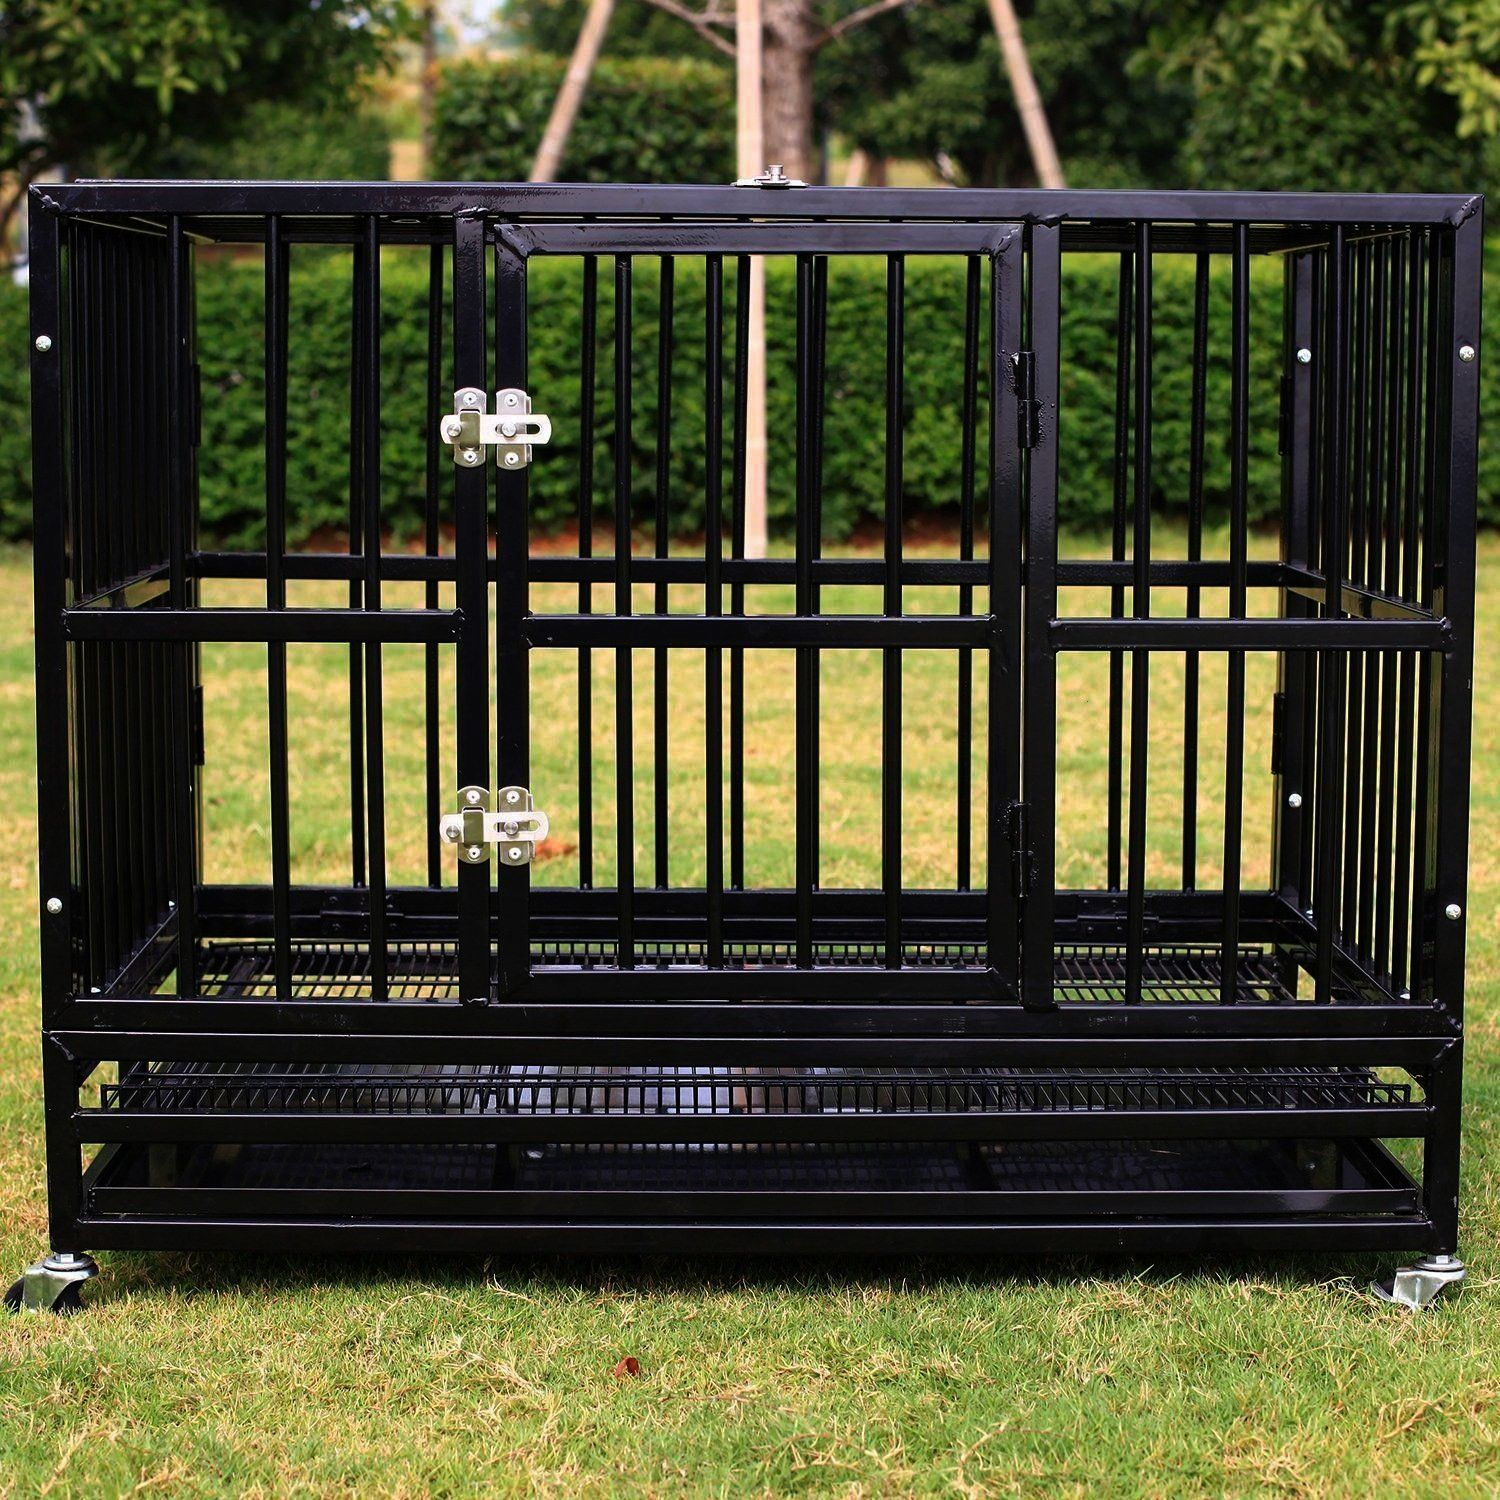 of Charge Walcut New Heavy Duty Strong Metal Pet Dog Cage Crate C   Excellent Free of Charge Walcut New Heavy Duty Strong Metal Pet Dog Cage Crate C  Excellent Free of Ch...